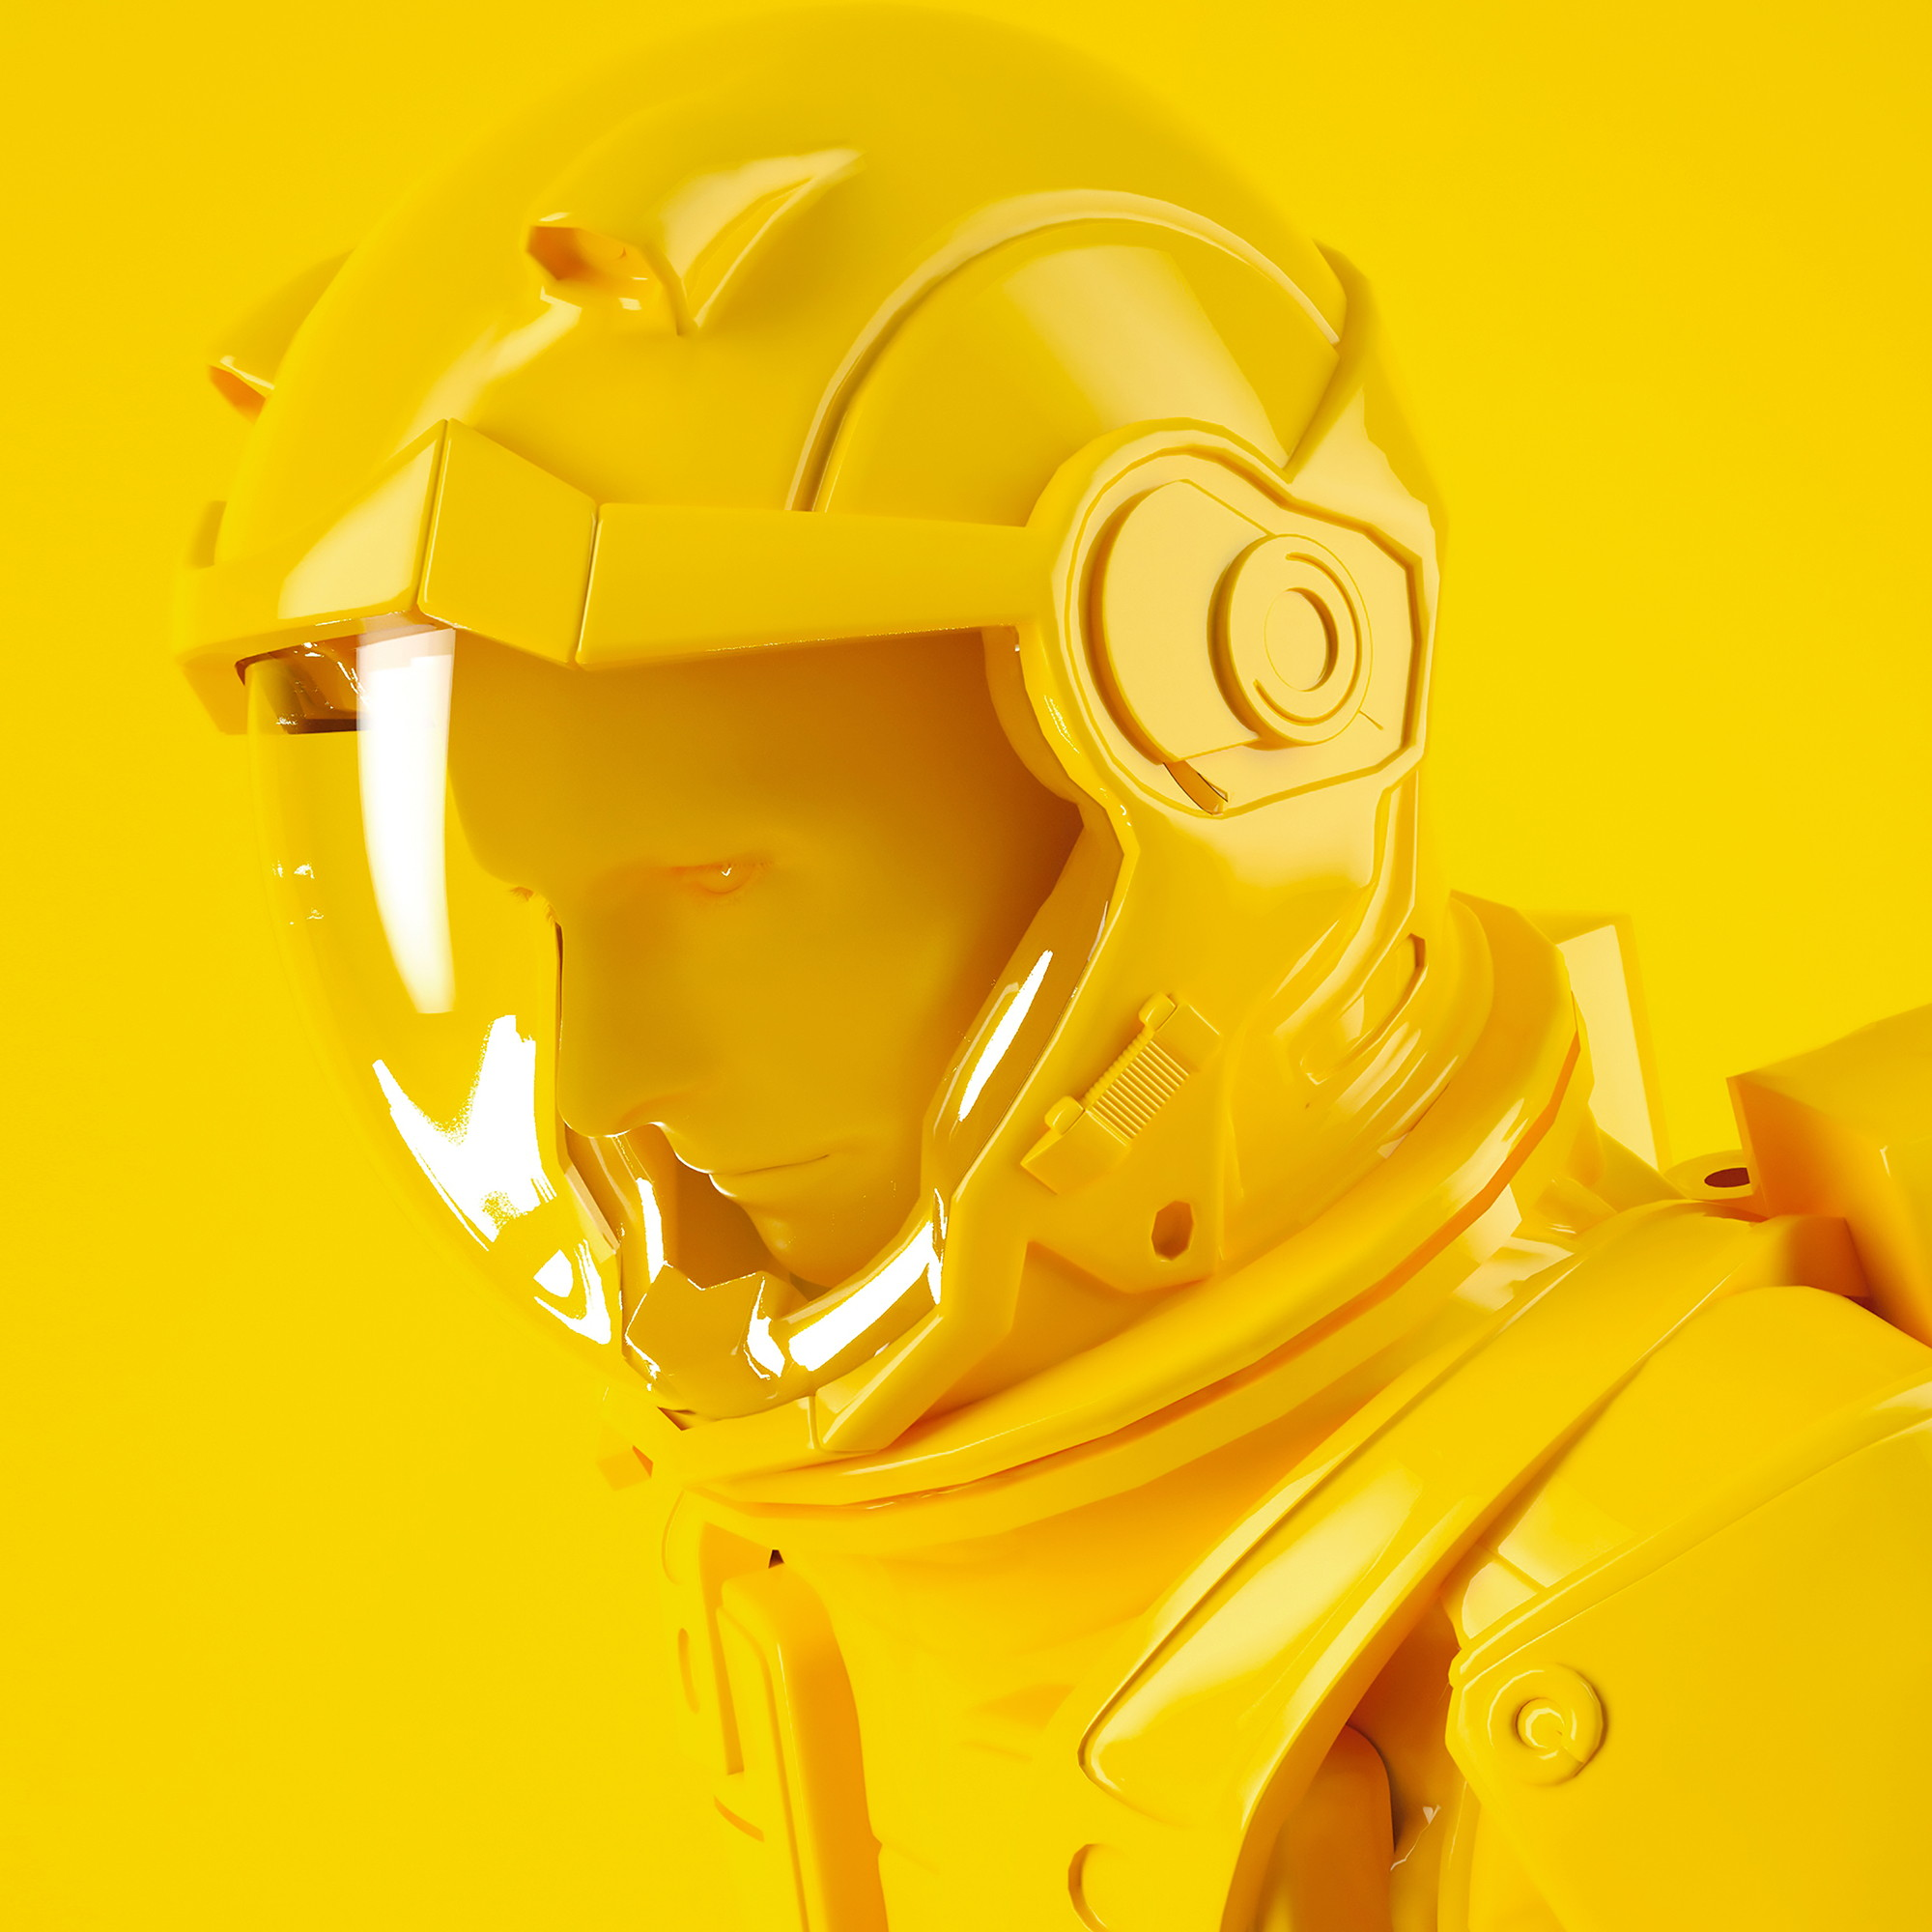 astronaut, 3d graphic, Yellow Visual IP Design by Yu Chen